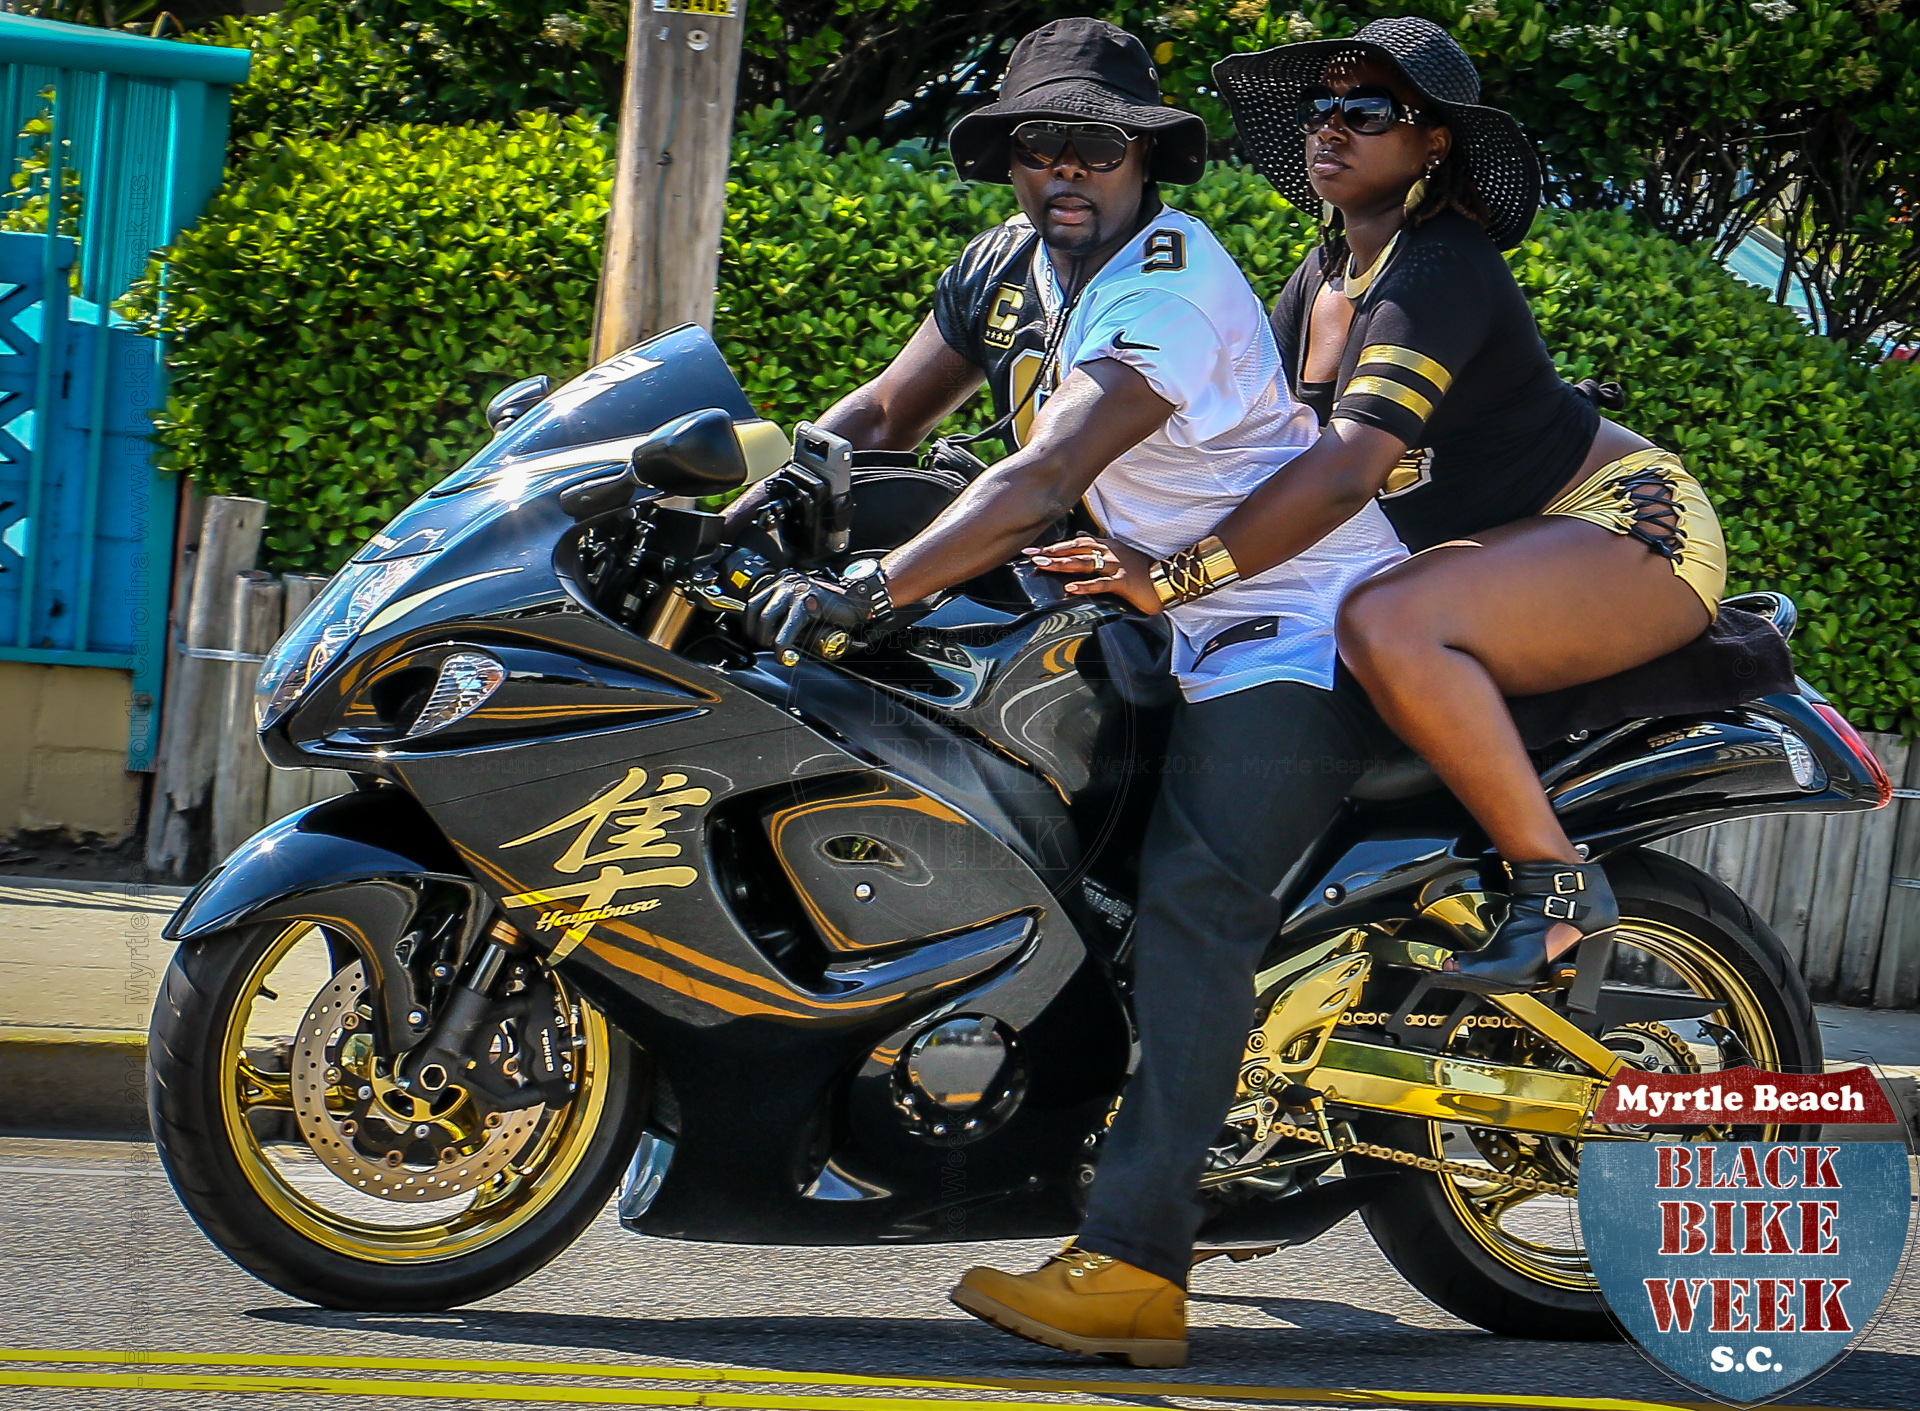 It S Black Bike Week Watch 2 Short Doentaries On The Por Annual Event Inwire